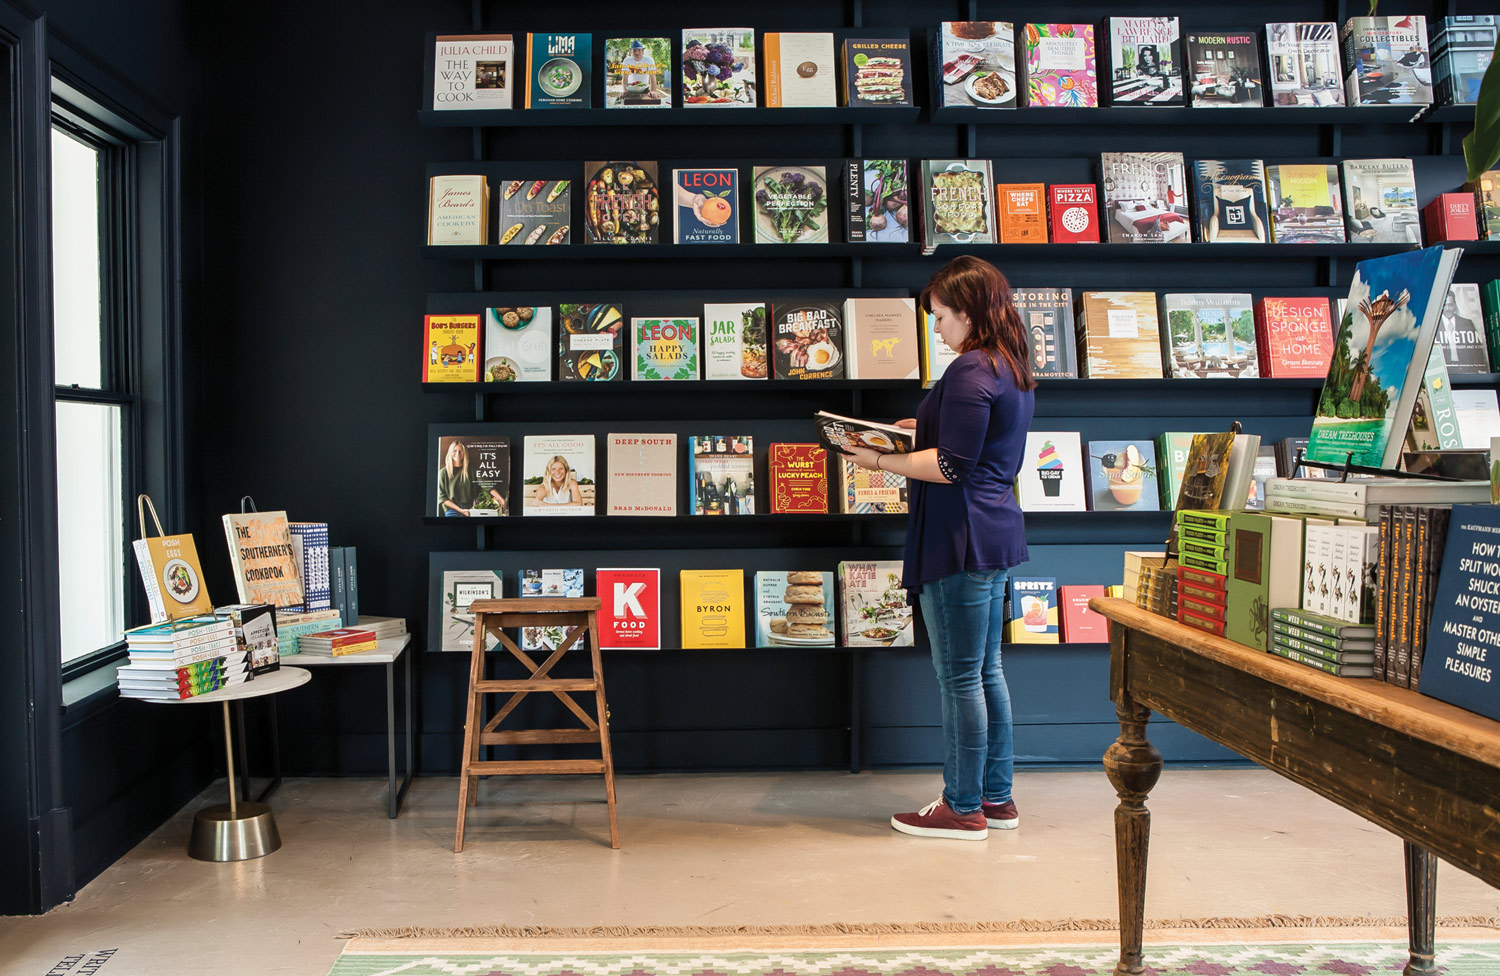 indie bookstores atlanta bookstore stores read independent should three saving matter private why magazine